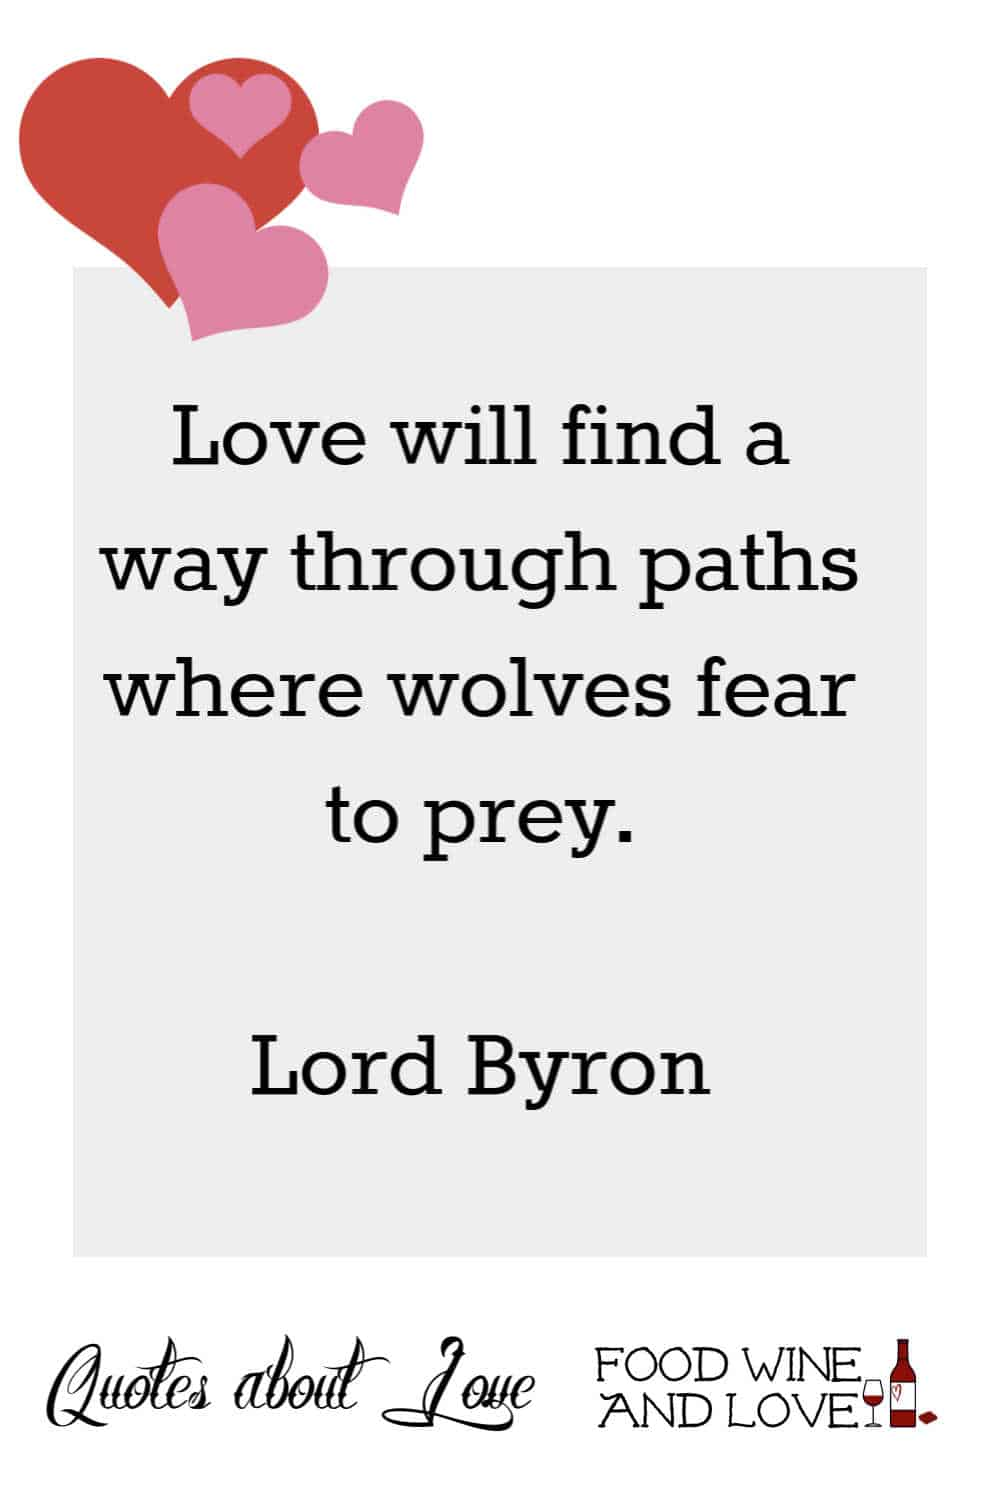 Love will find a way through paths where wolves fear to prey.  Lord Byron